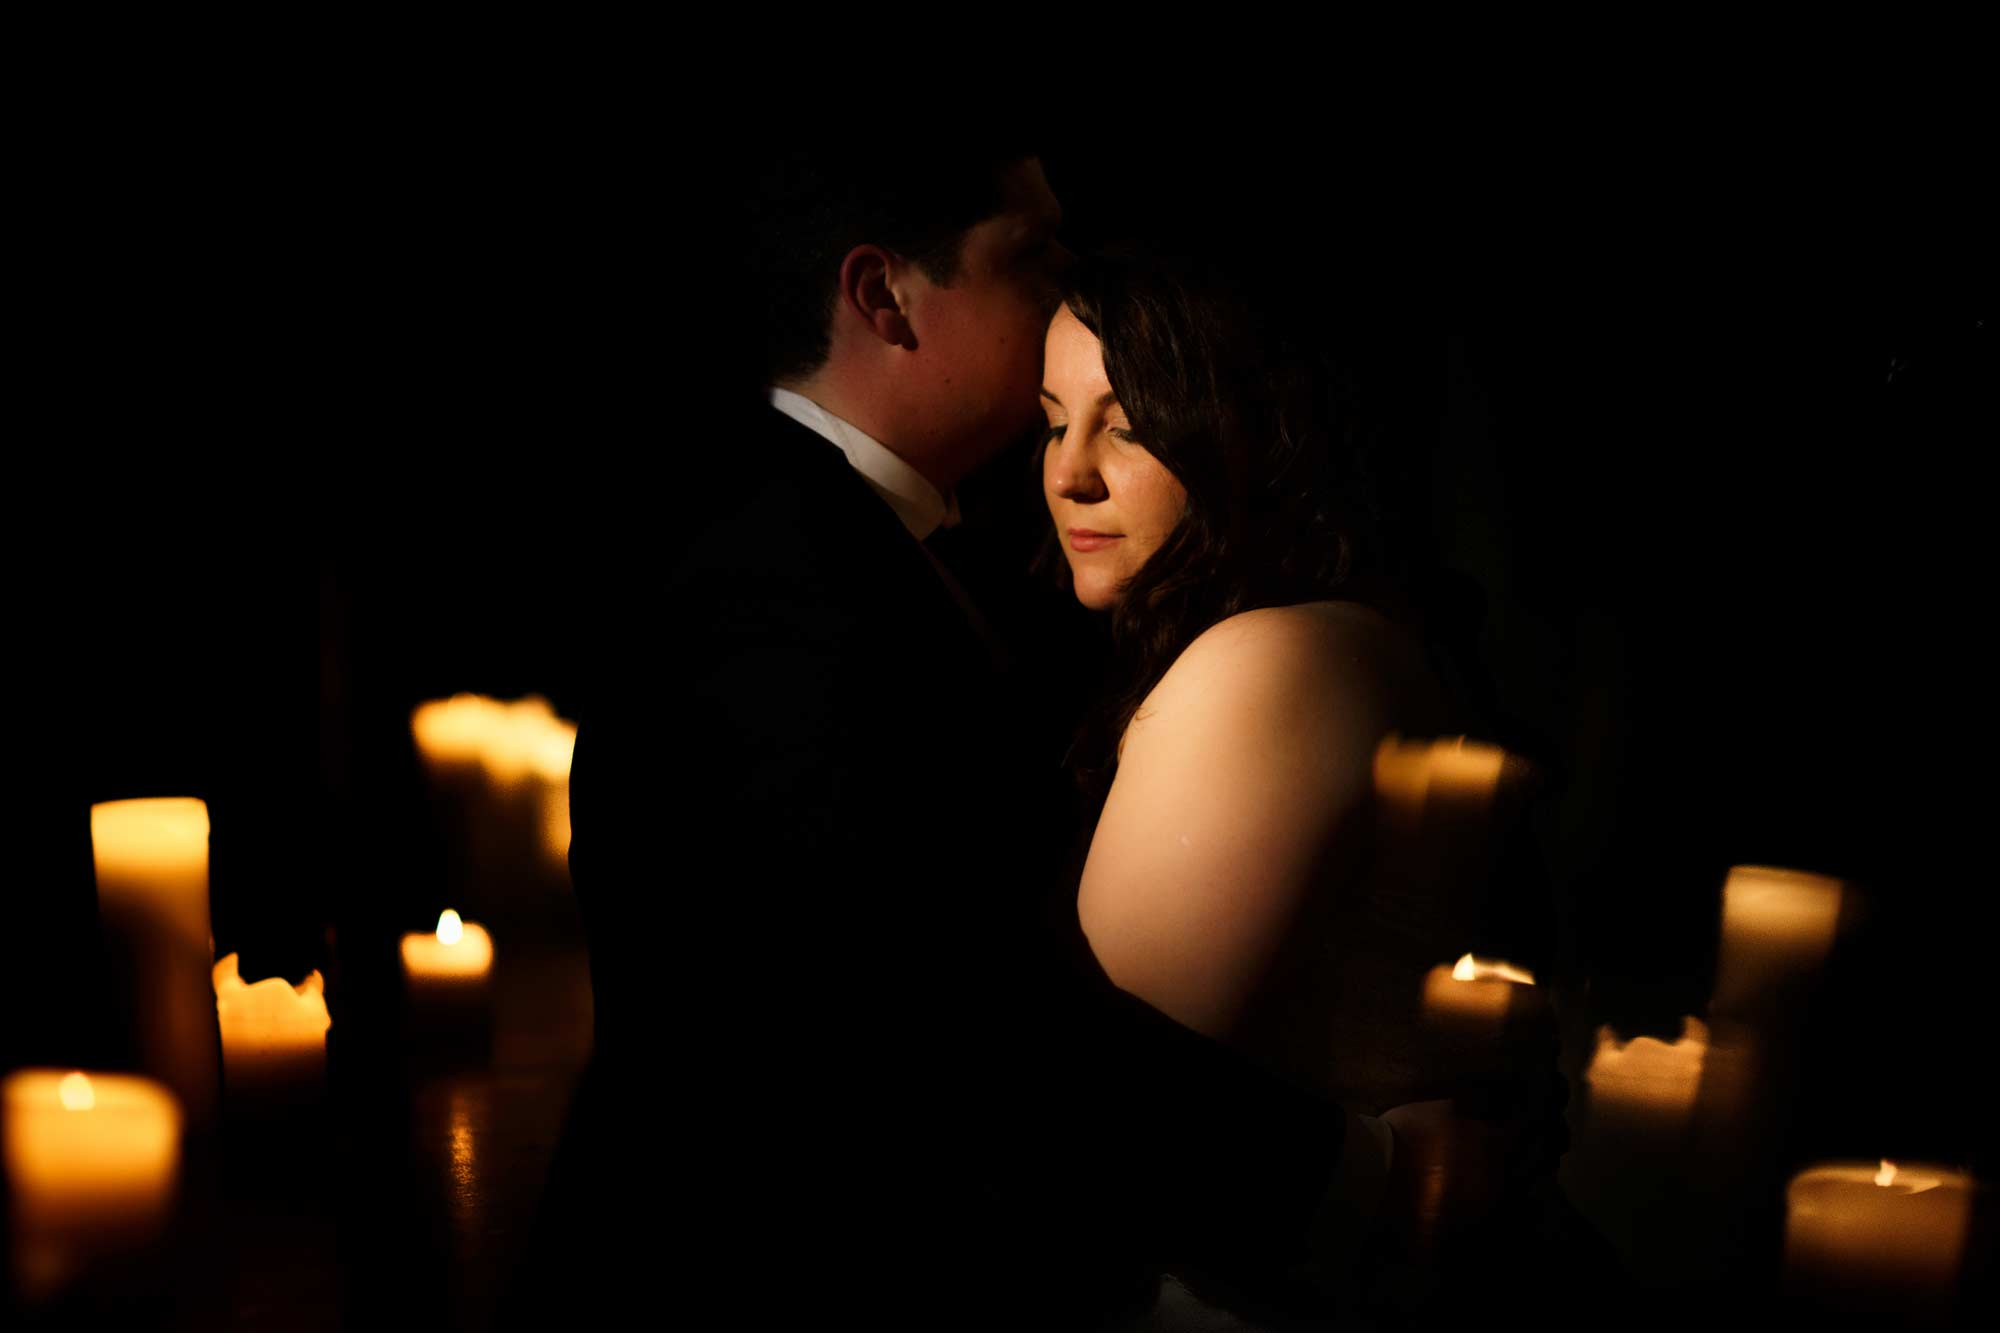 creative wedding photograph of a bride and groom surrounded by candles at samlesbury hall wedding